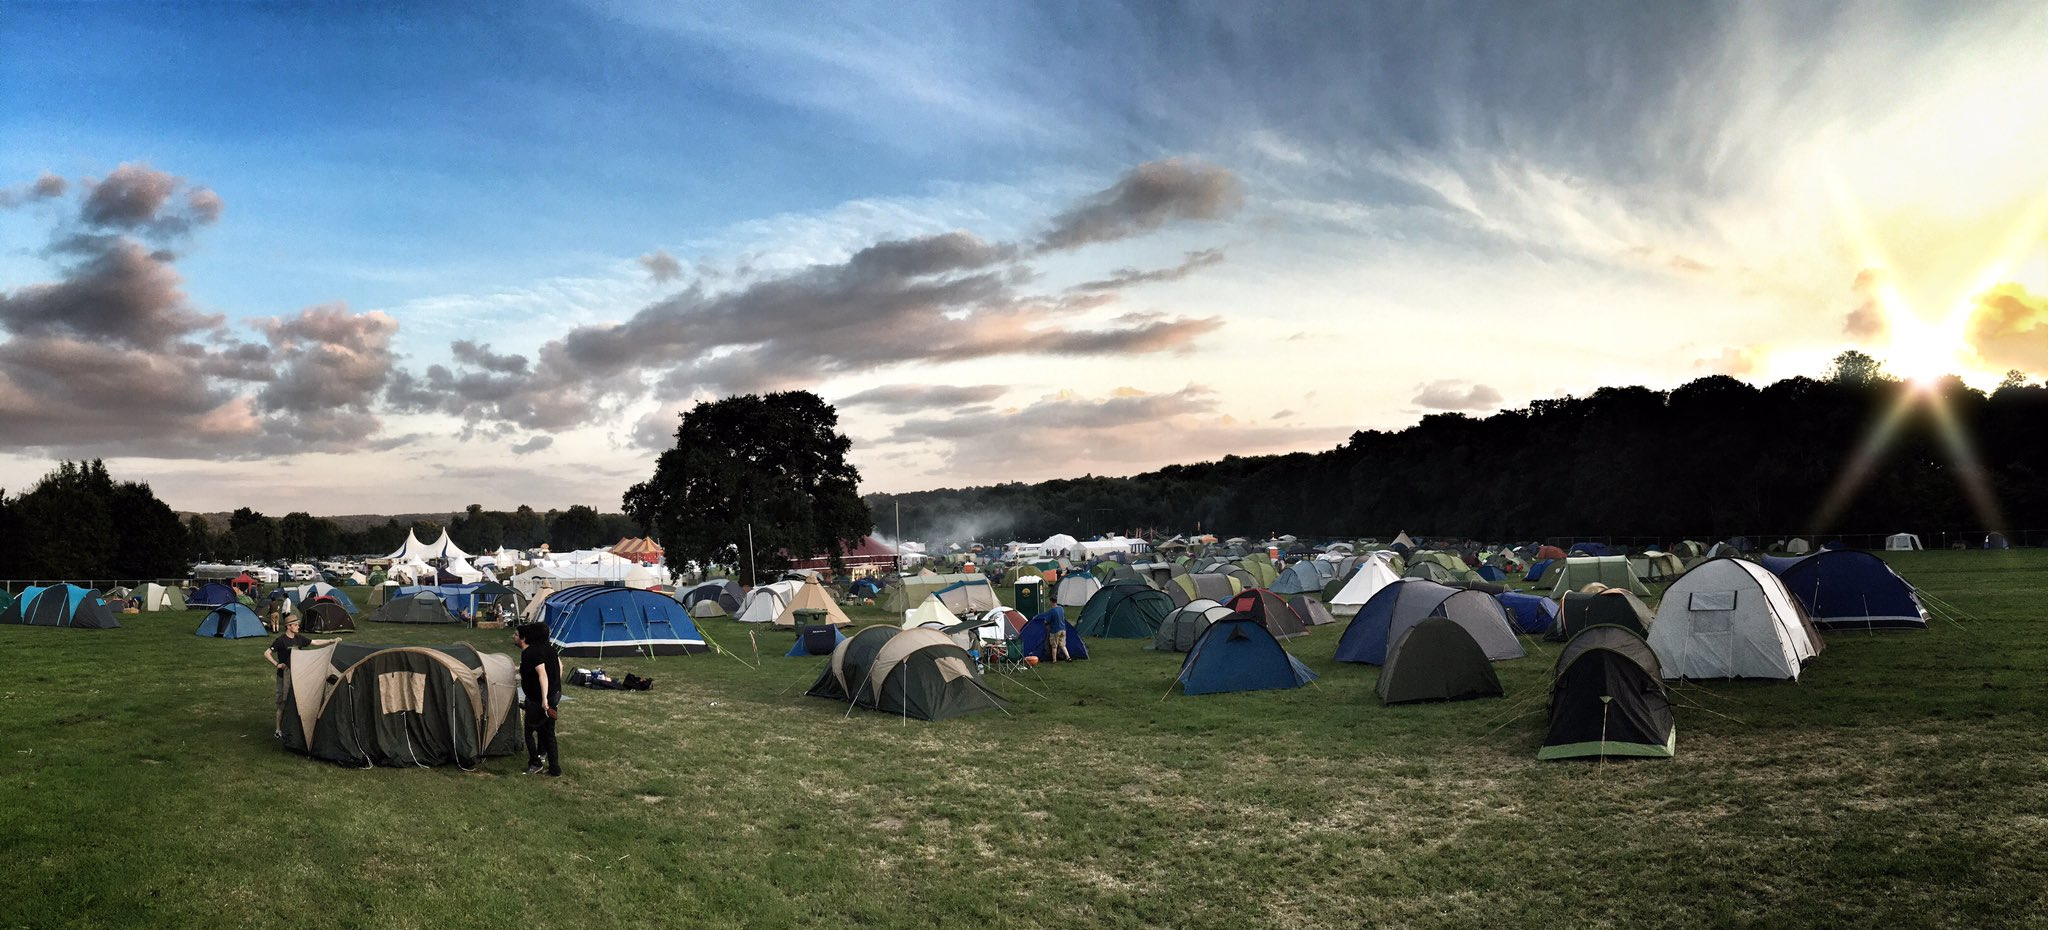 The view from my tent over @emfcamp  #emfcamp #EMF2016 https://t.co/IH3dJWCTXE